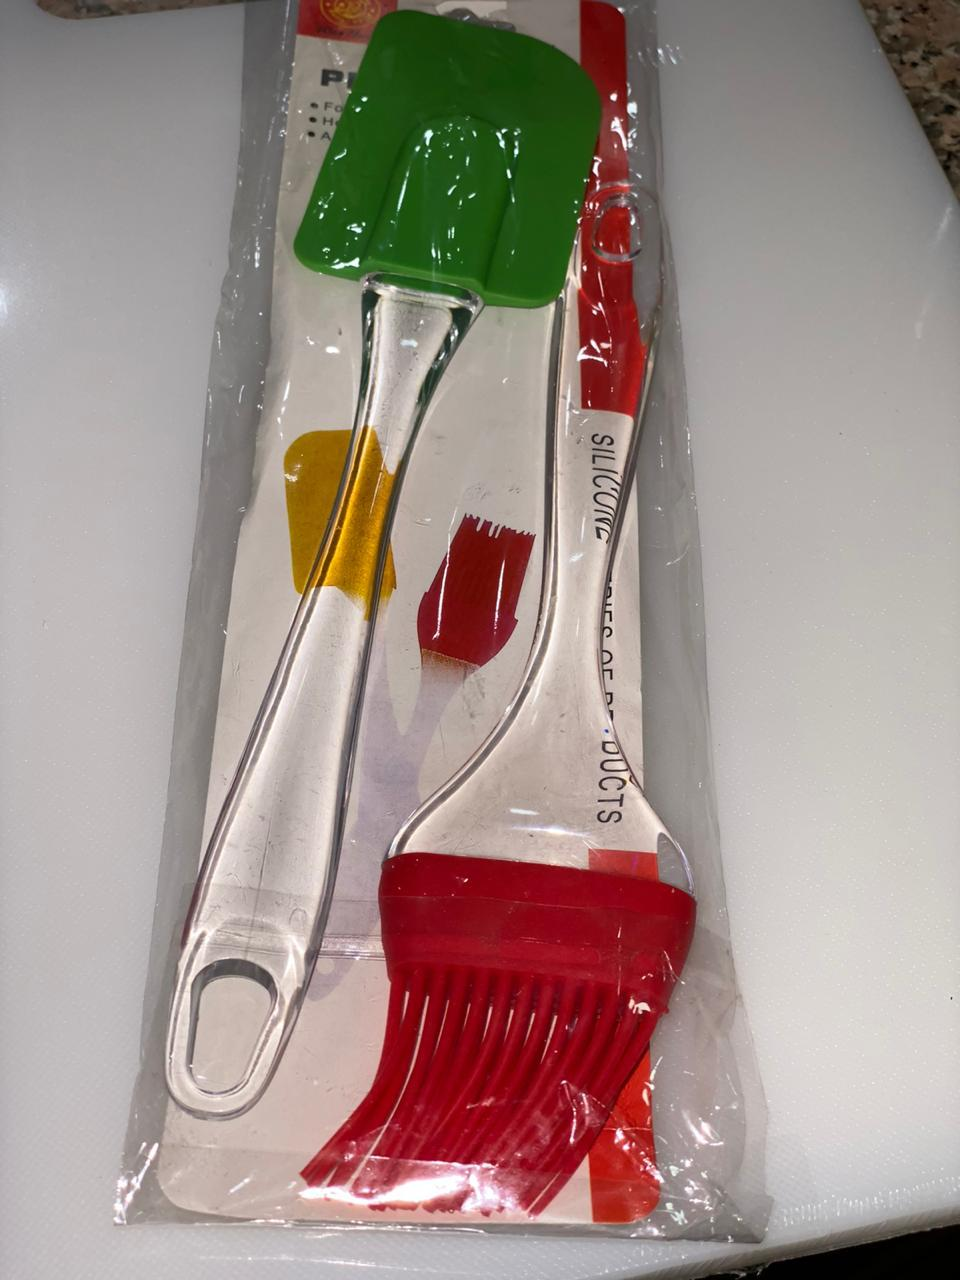 BAKEWARE SET OF SPATULA AND BRUSH SILICONE - Gogia bartan store